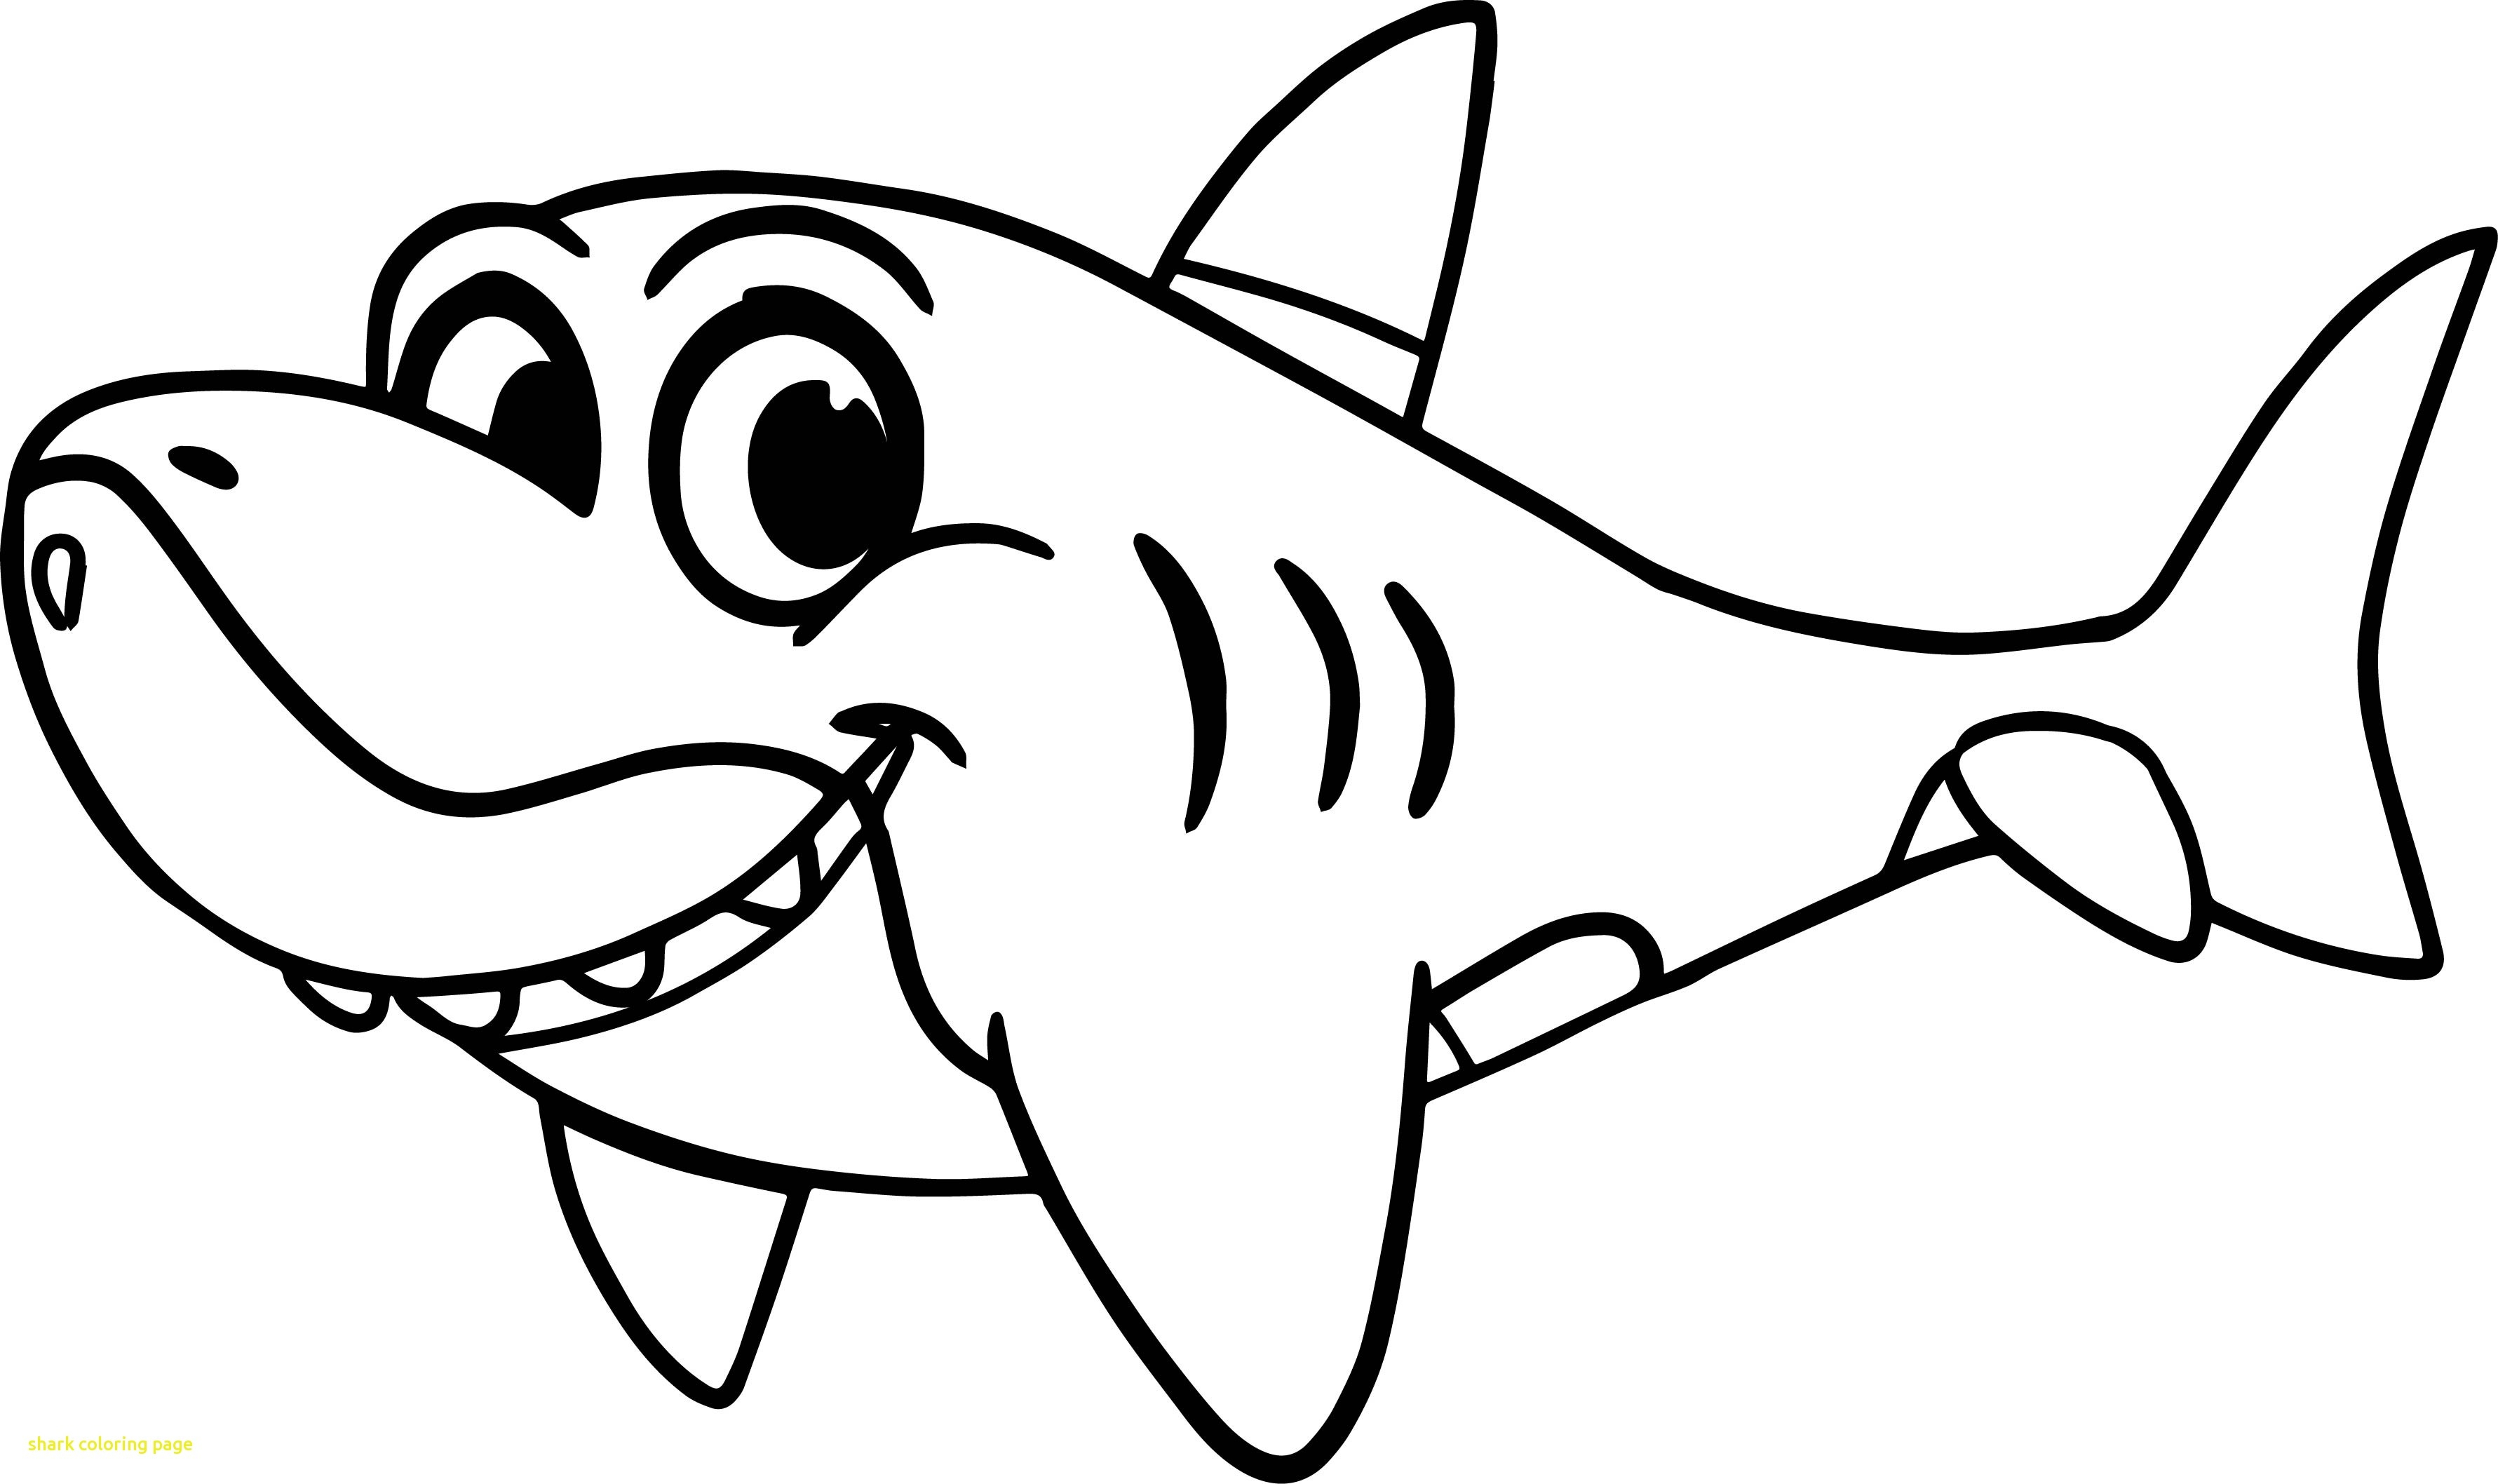 3562x2116 Unusual Shark Coloring Sheets Thresher Pages Free